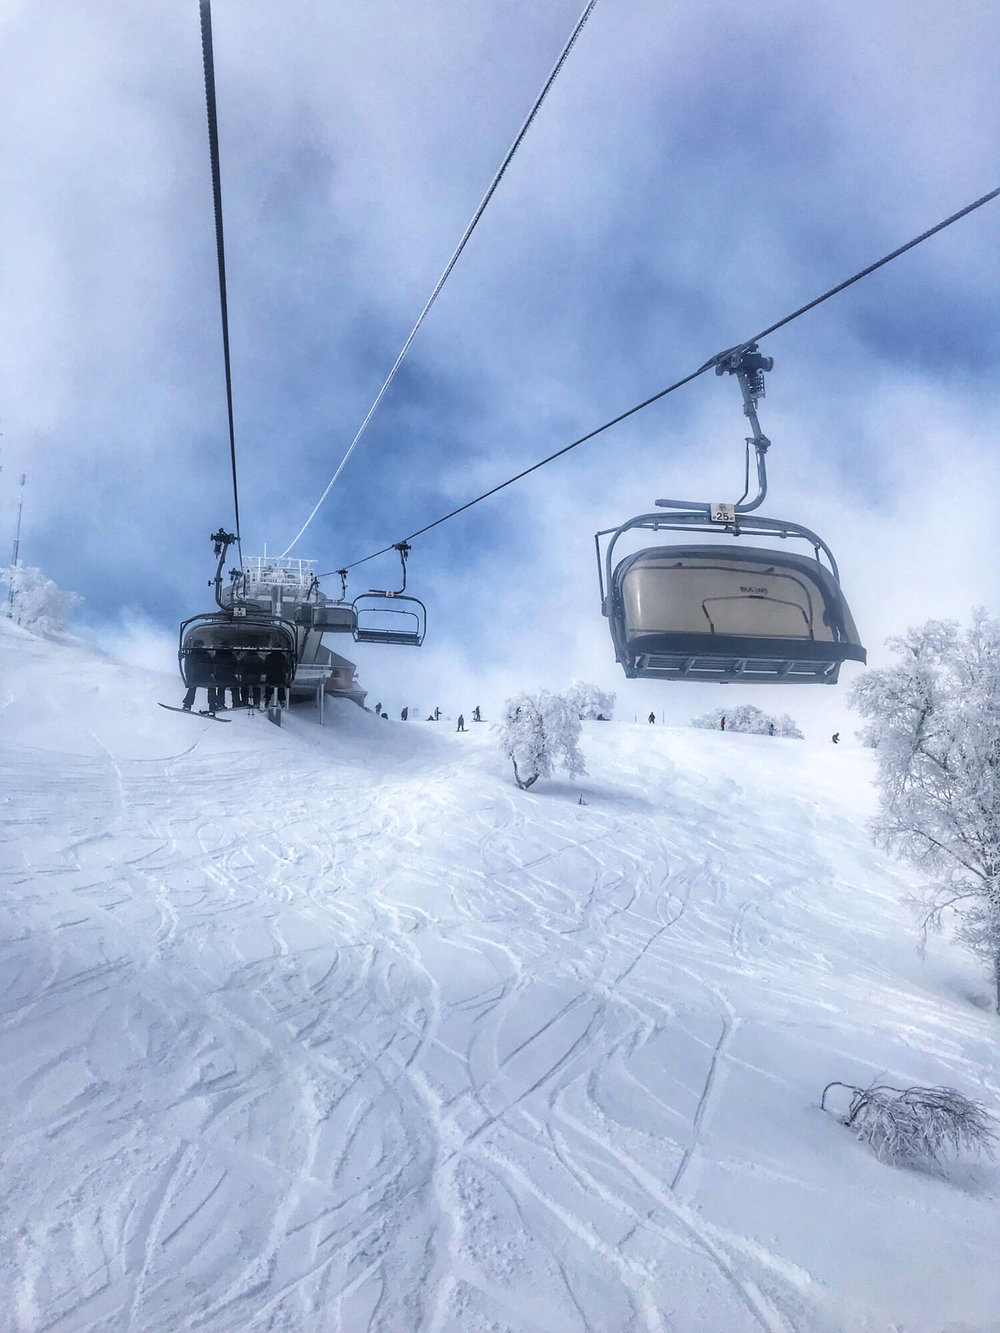 HOODED CHAIRLIFTS ARE THE BEST!